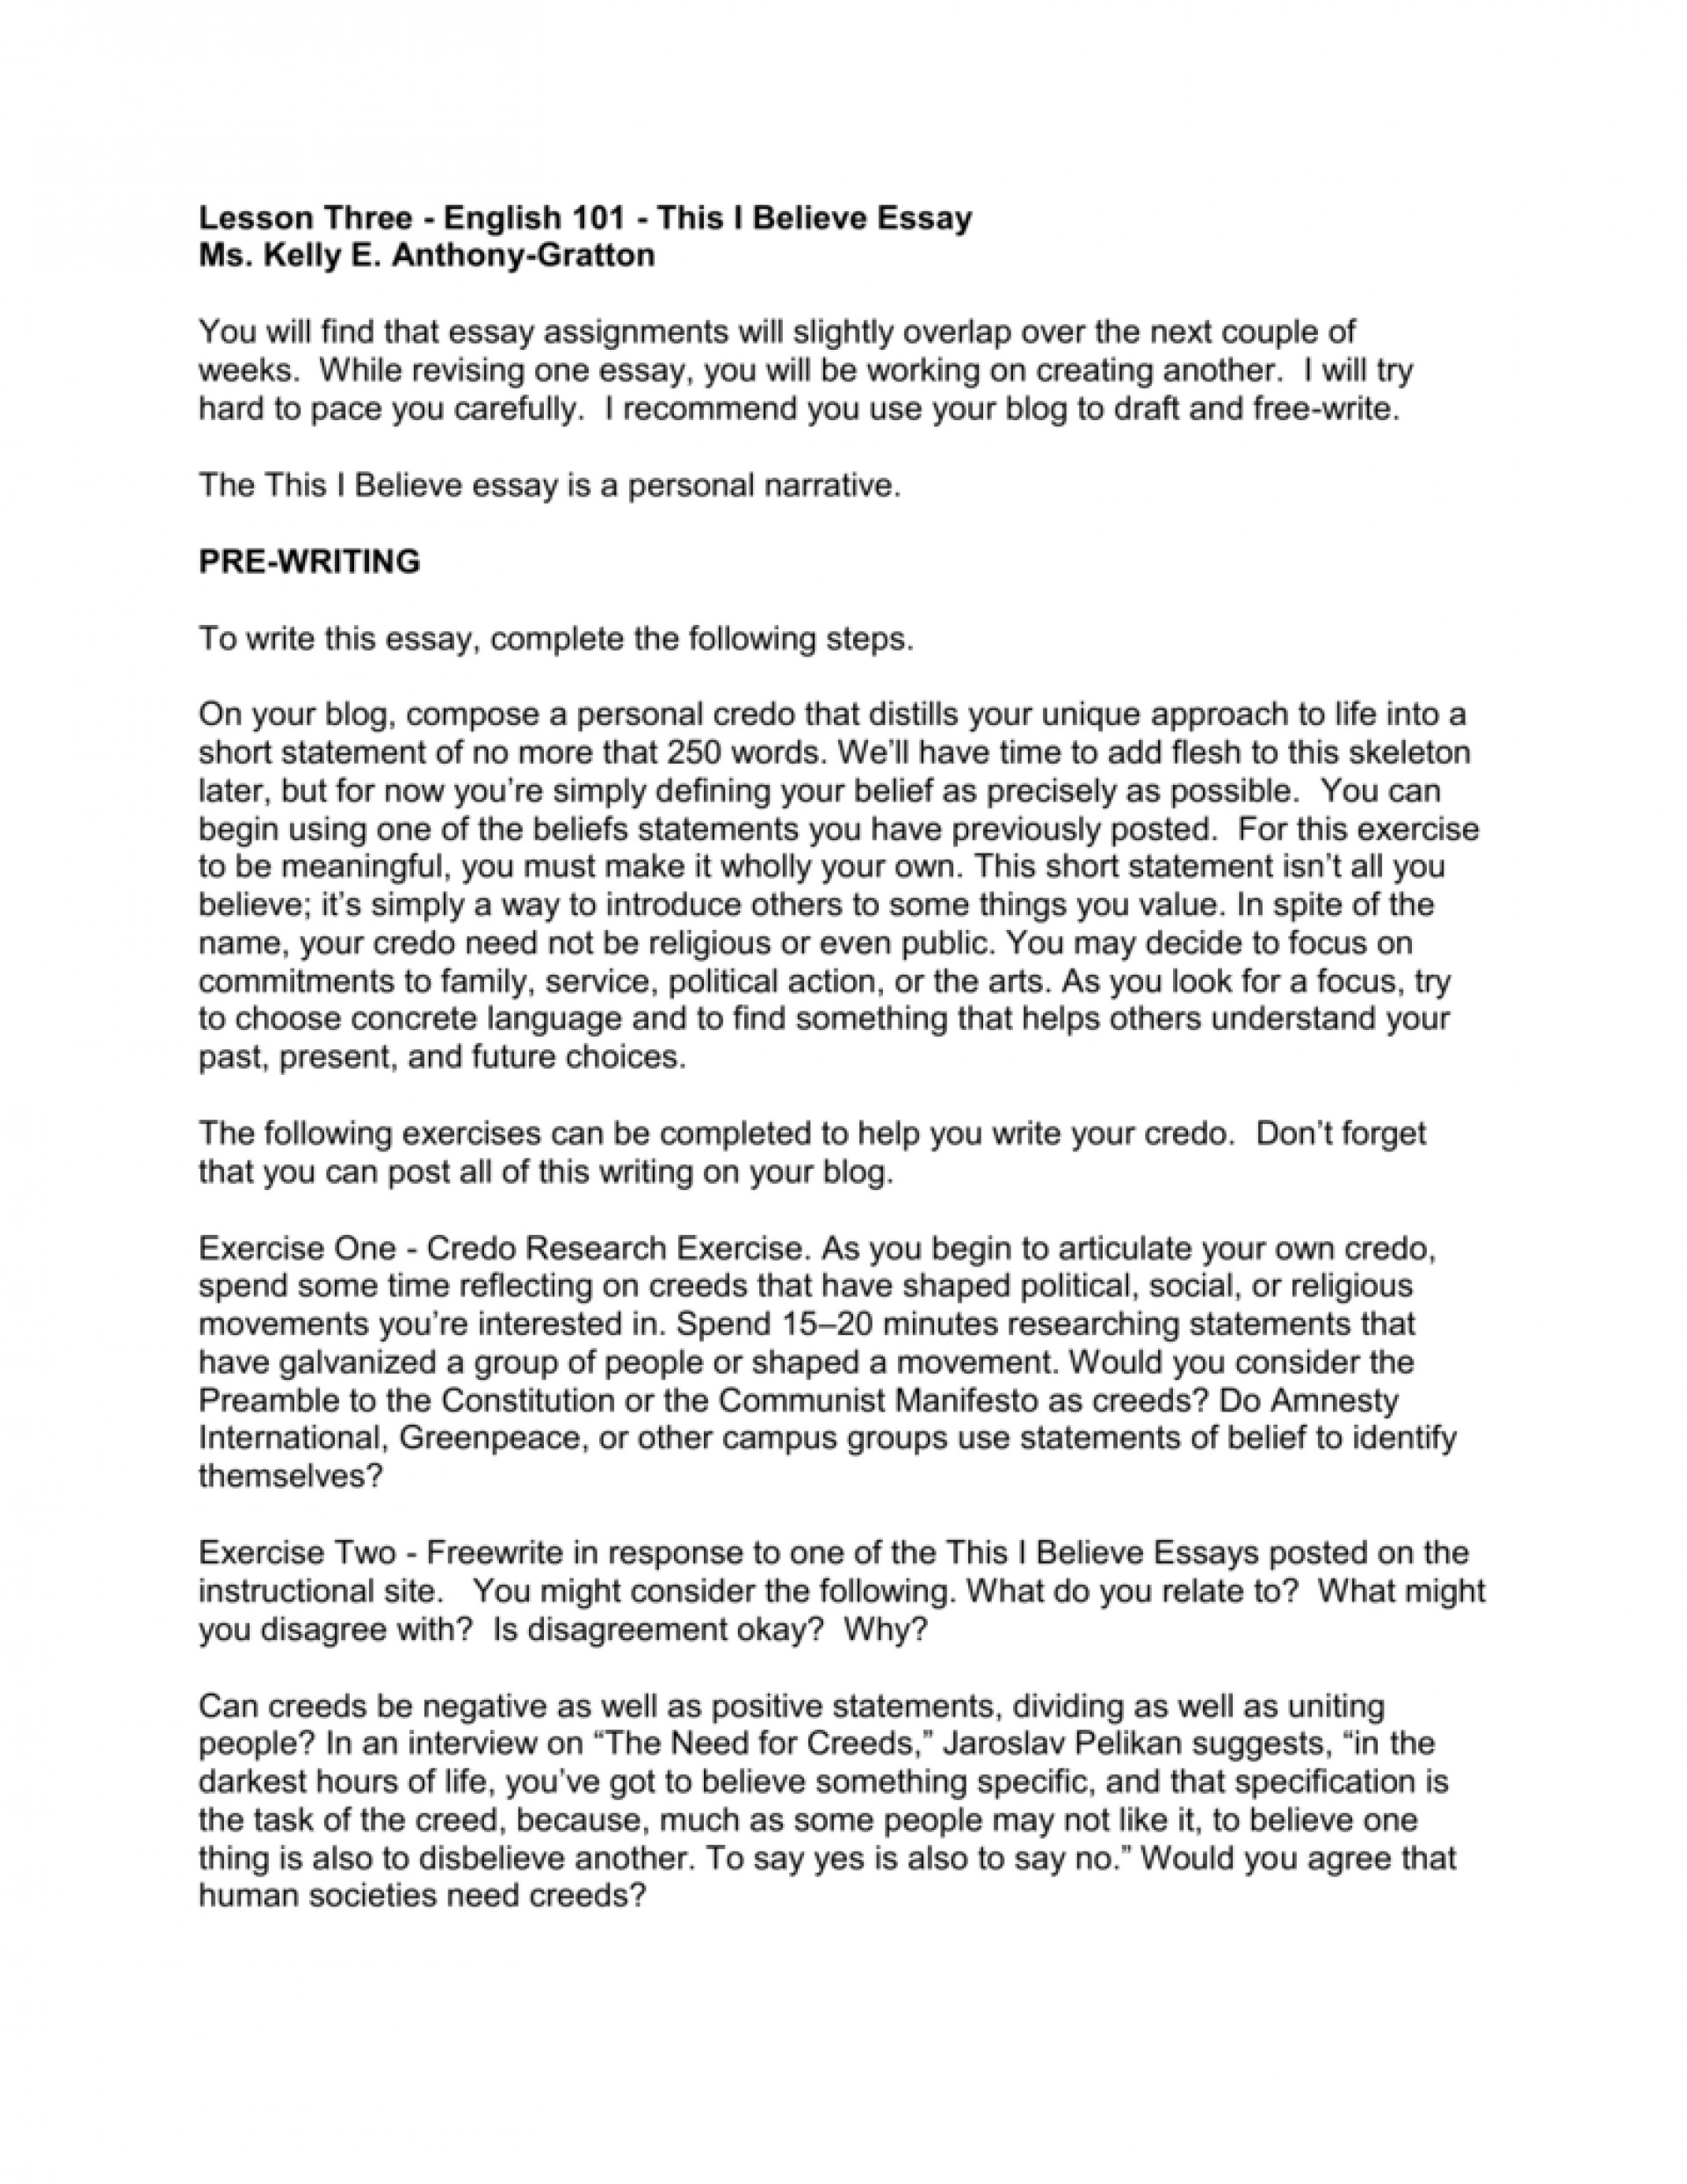 007 Essay Example This I Believe Examples 006667793 2 Stupendous Personal College 1920